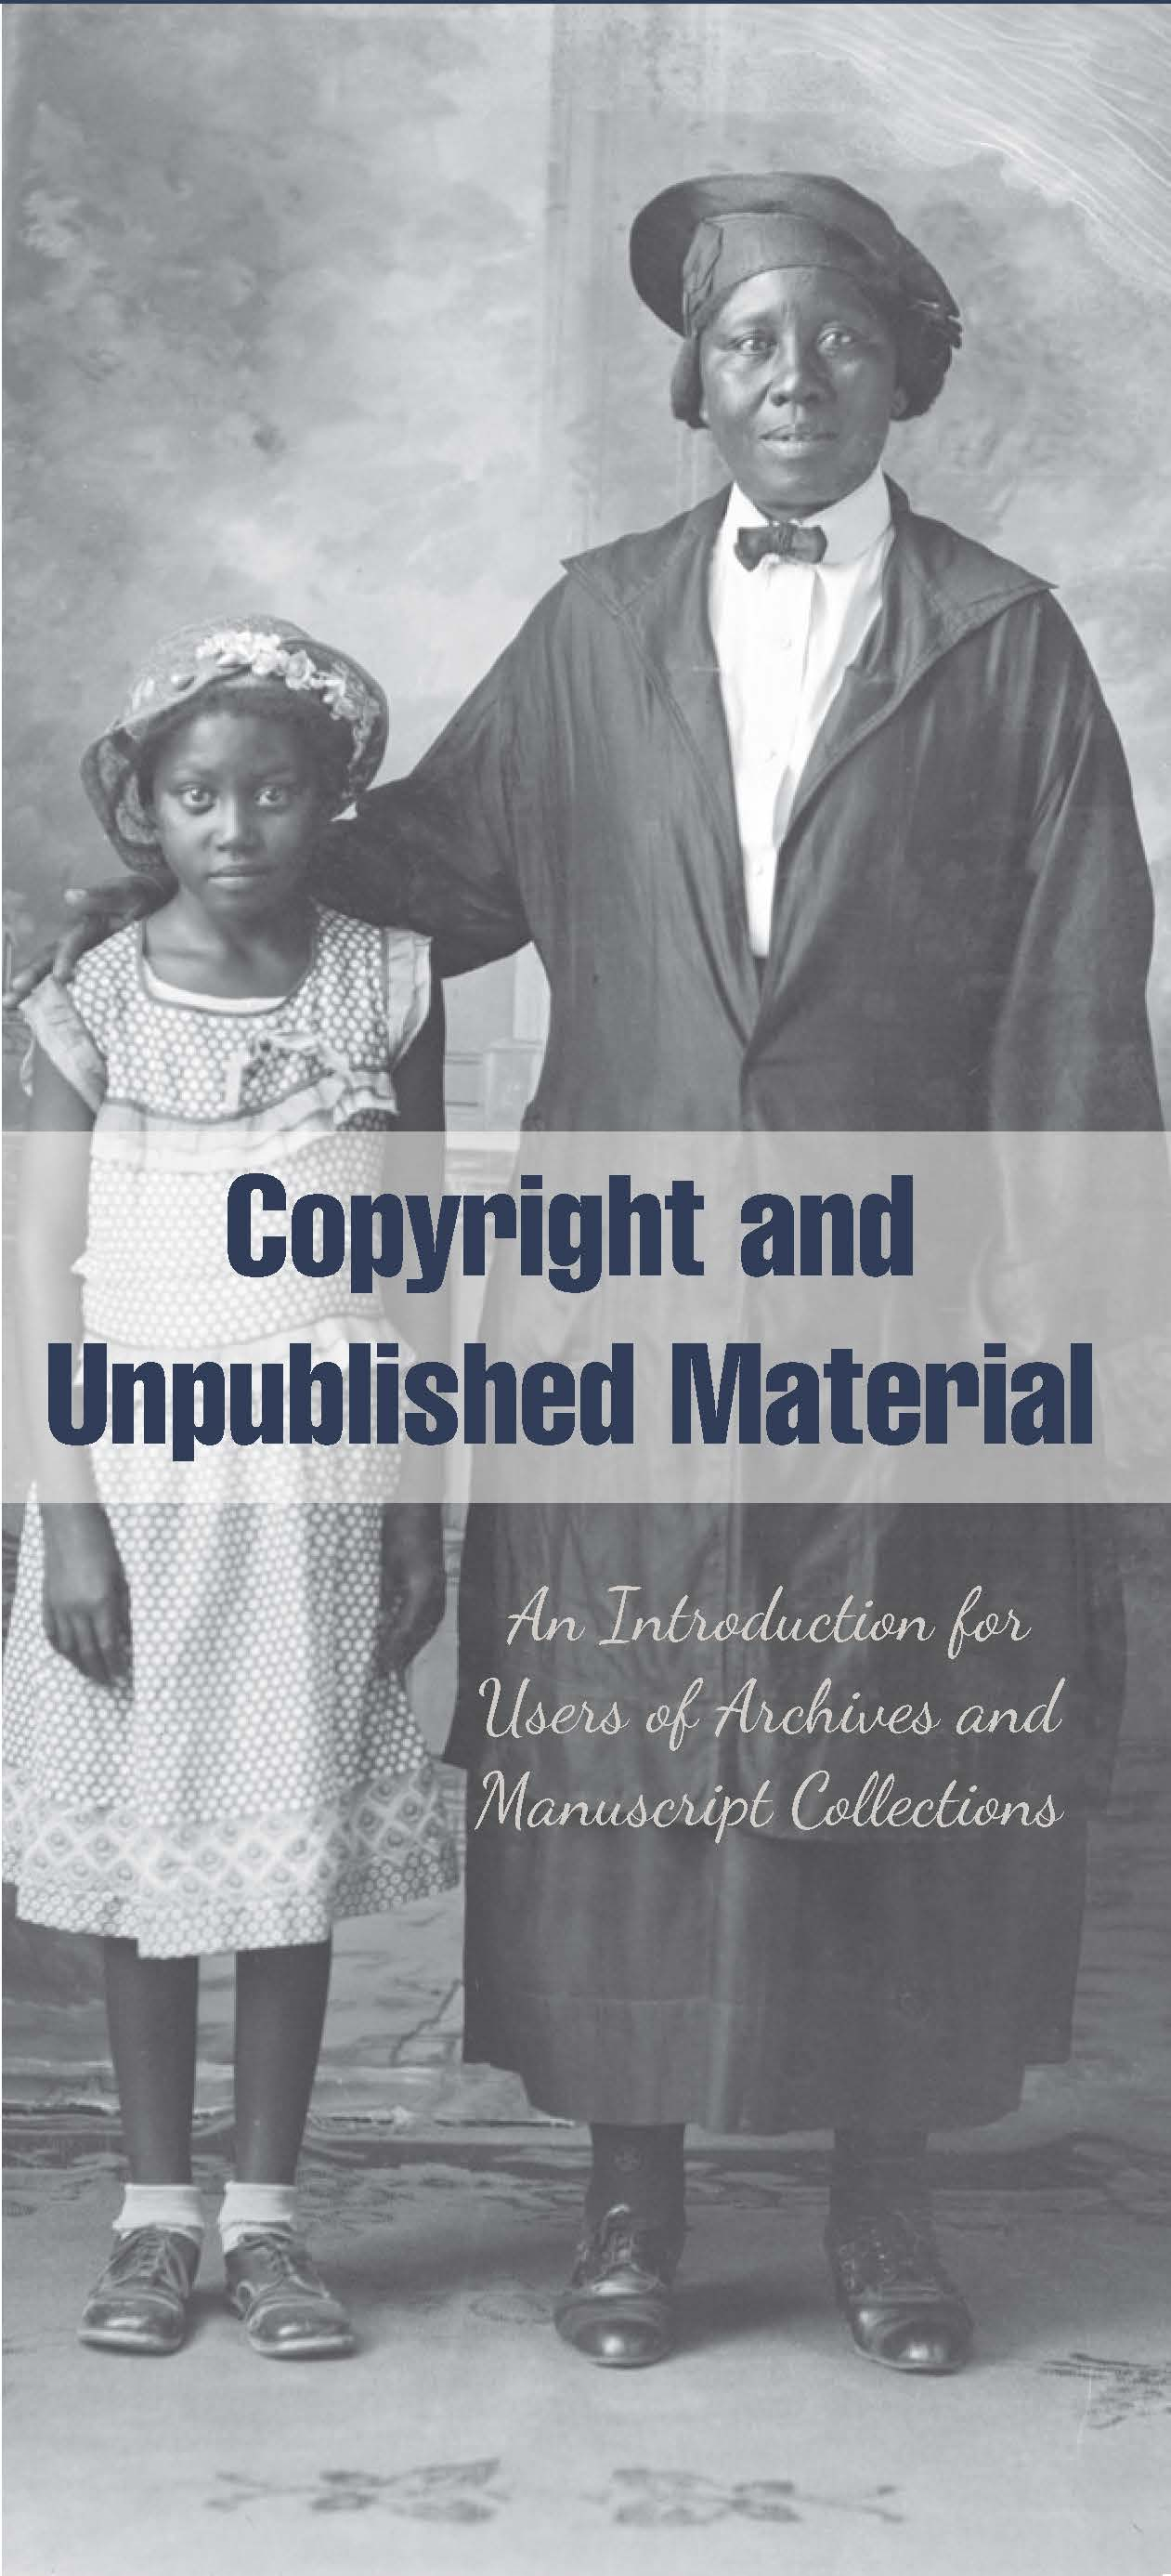 copyright and unpublished material society of american archivists